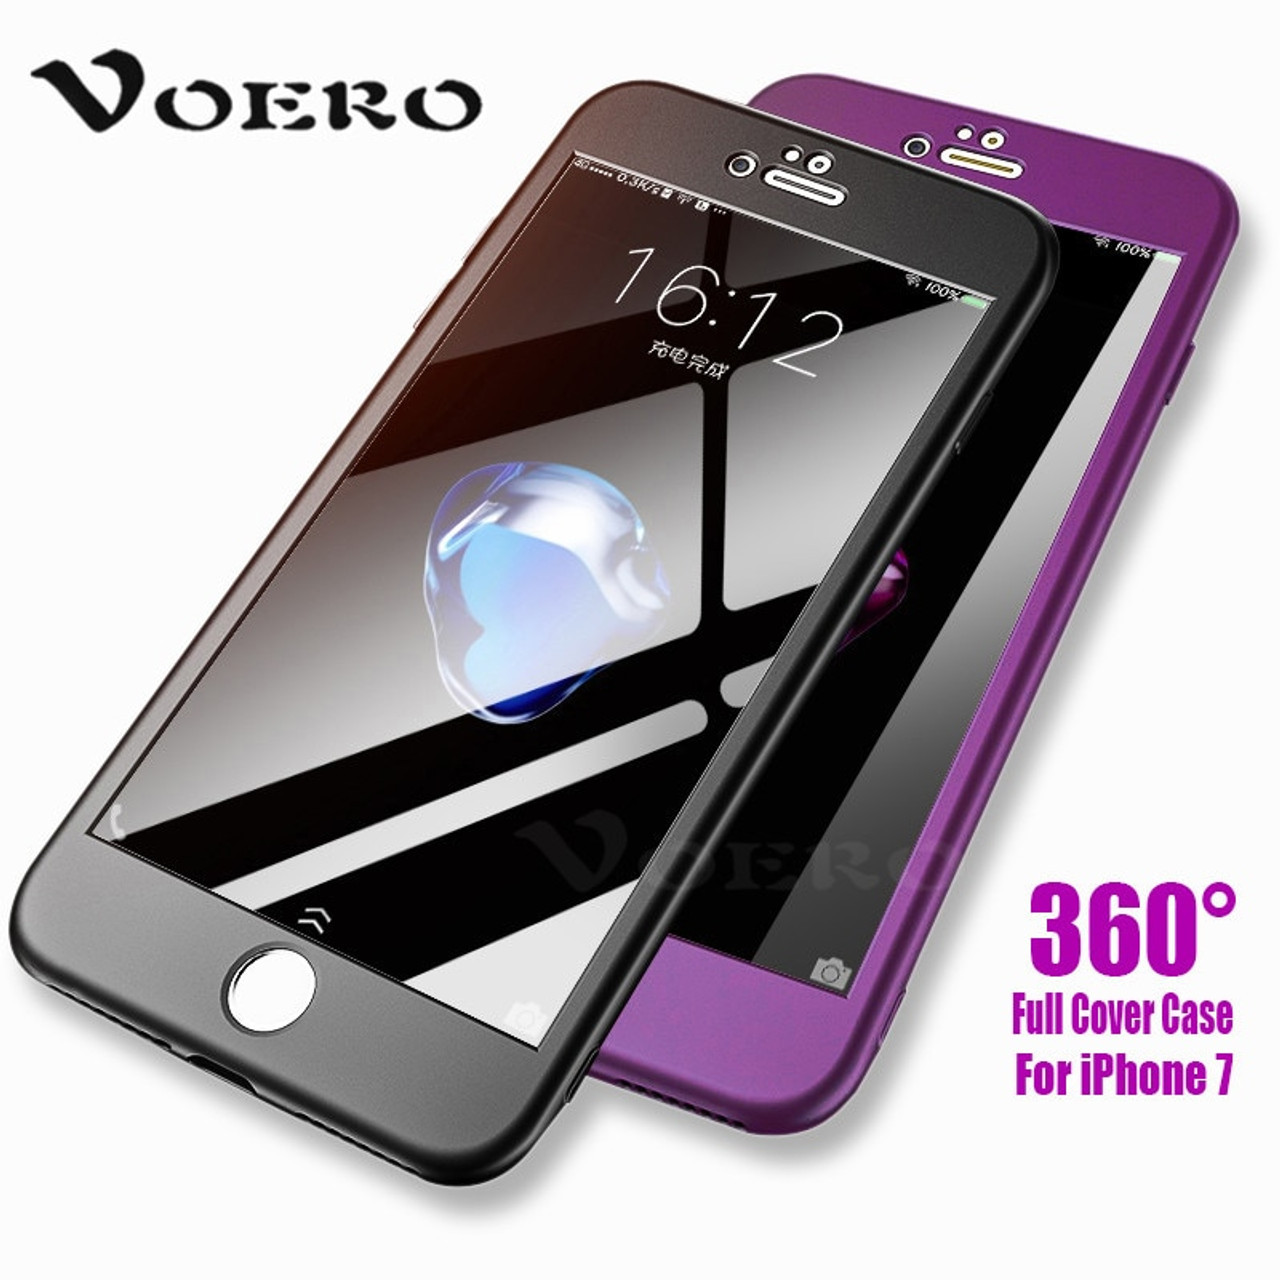 sneakers for cheap 952db a1e60 VOERO 360 Degree Full Cover Case For iPhone 6s 7 8 Plus Hard PC Plastic  Phone Cases For iPhone X 6 6s 5 5s SE Case Cover Coque